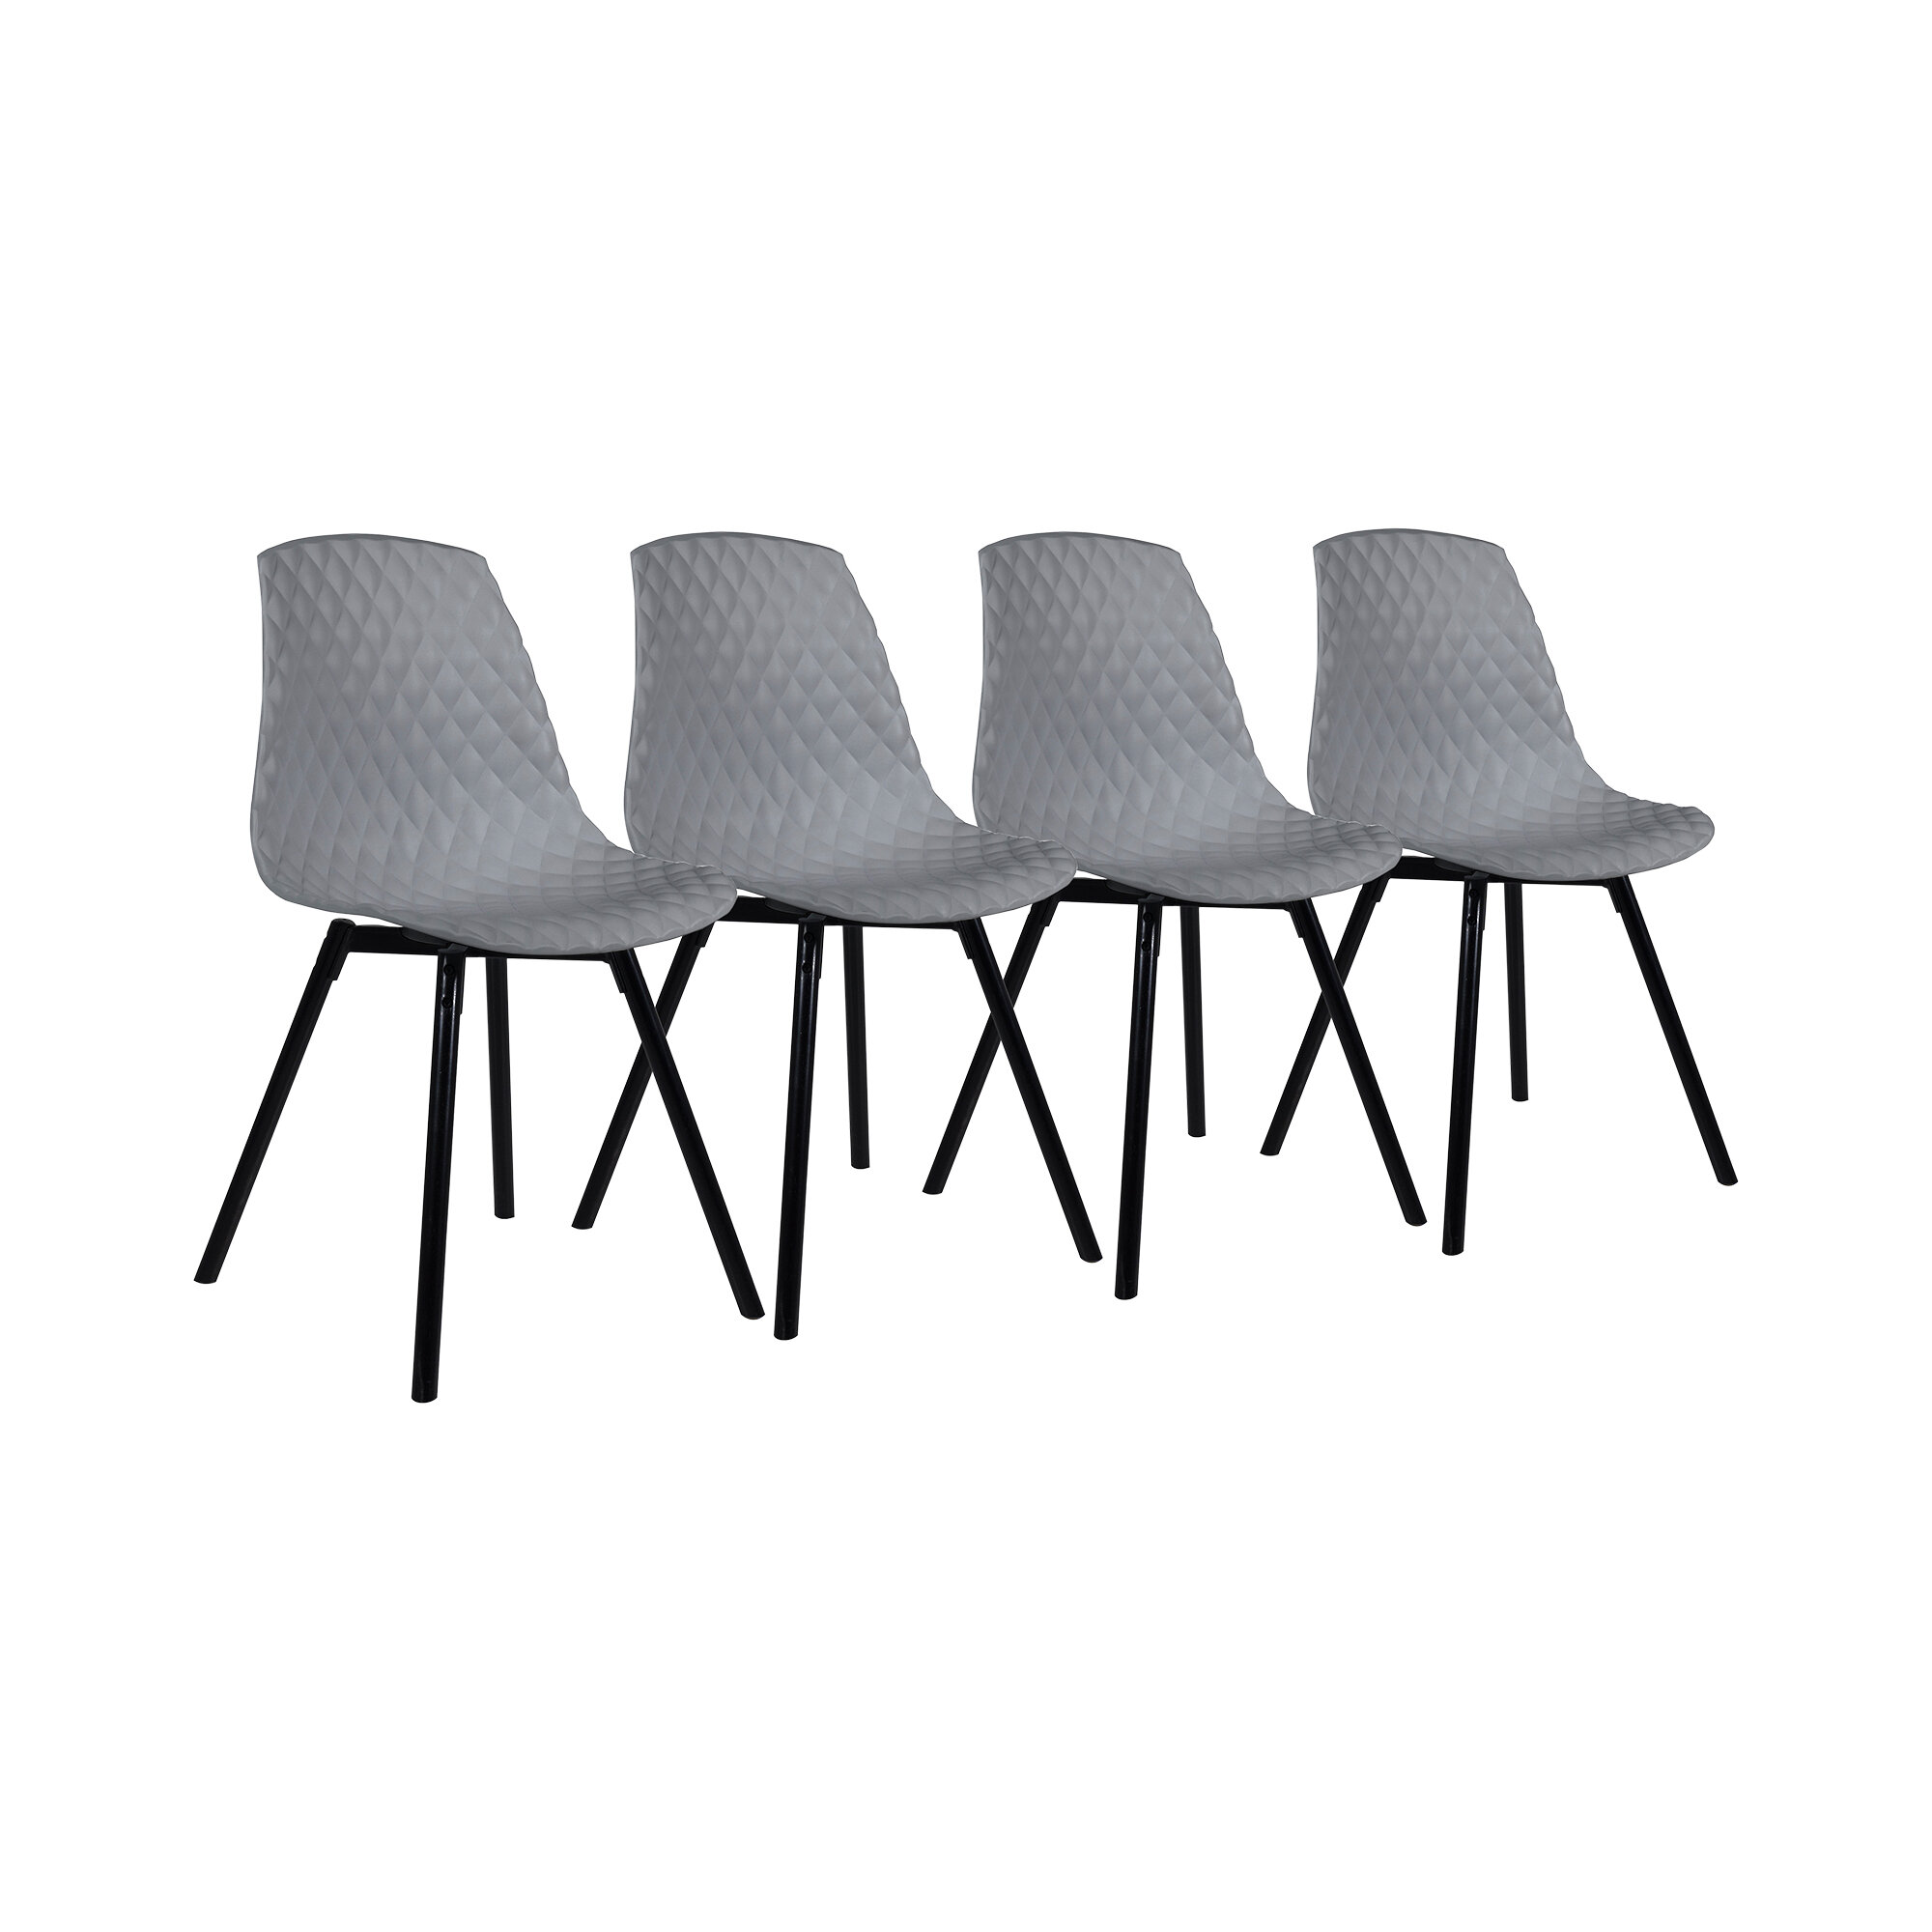 Tenzo Ruby Designer Dining Chair U0026 Reviews | Wayfair.co.uk